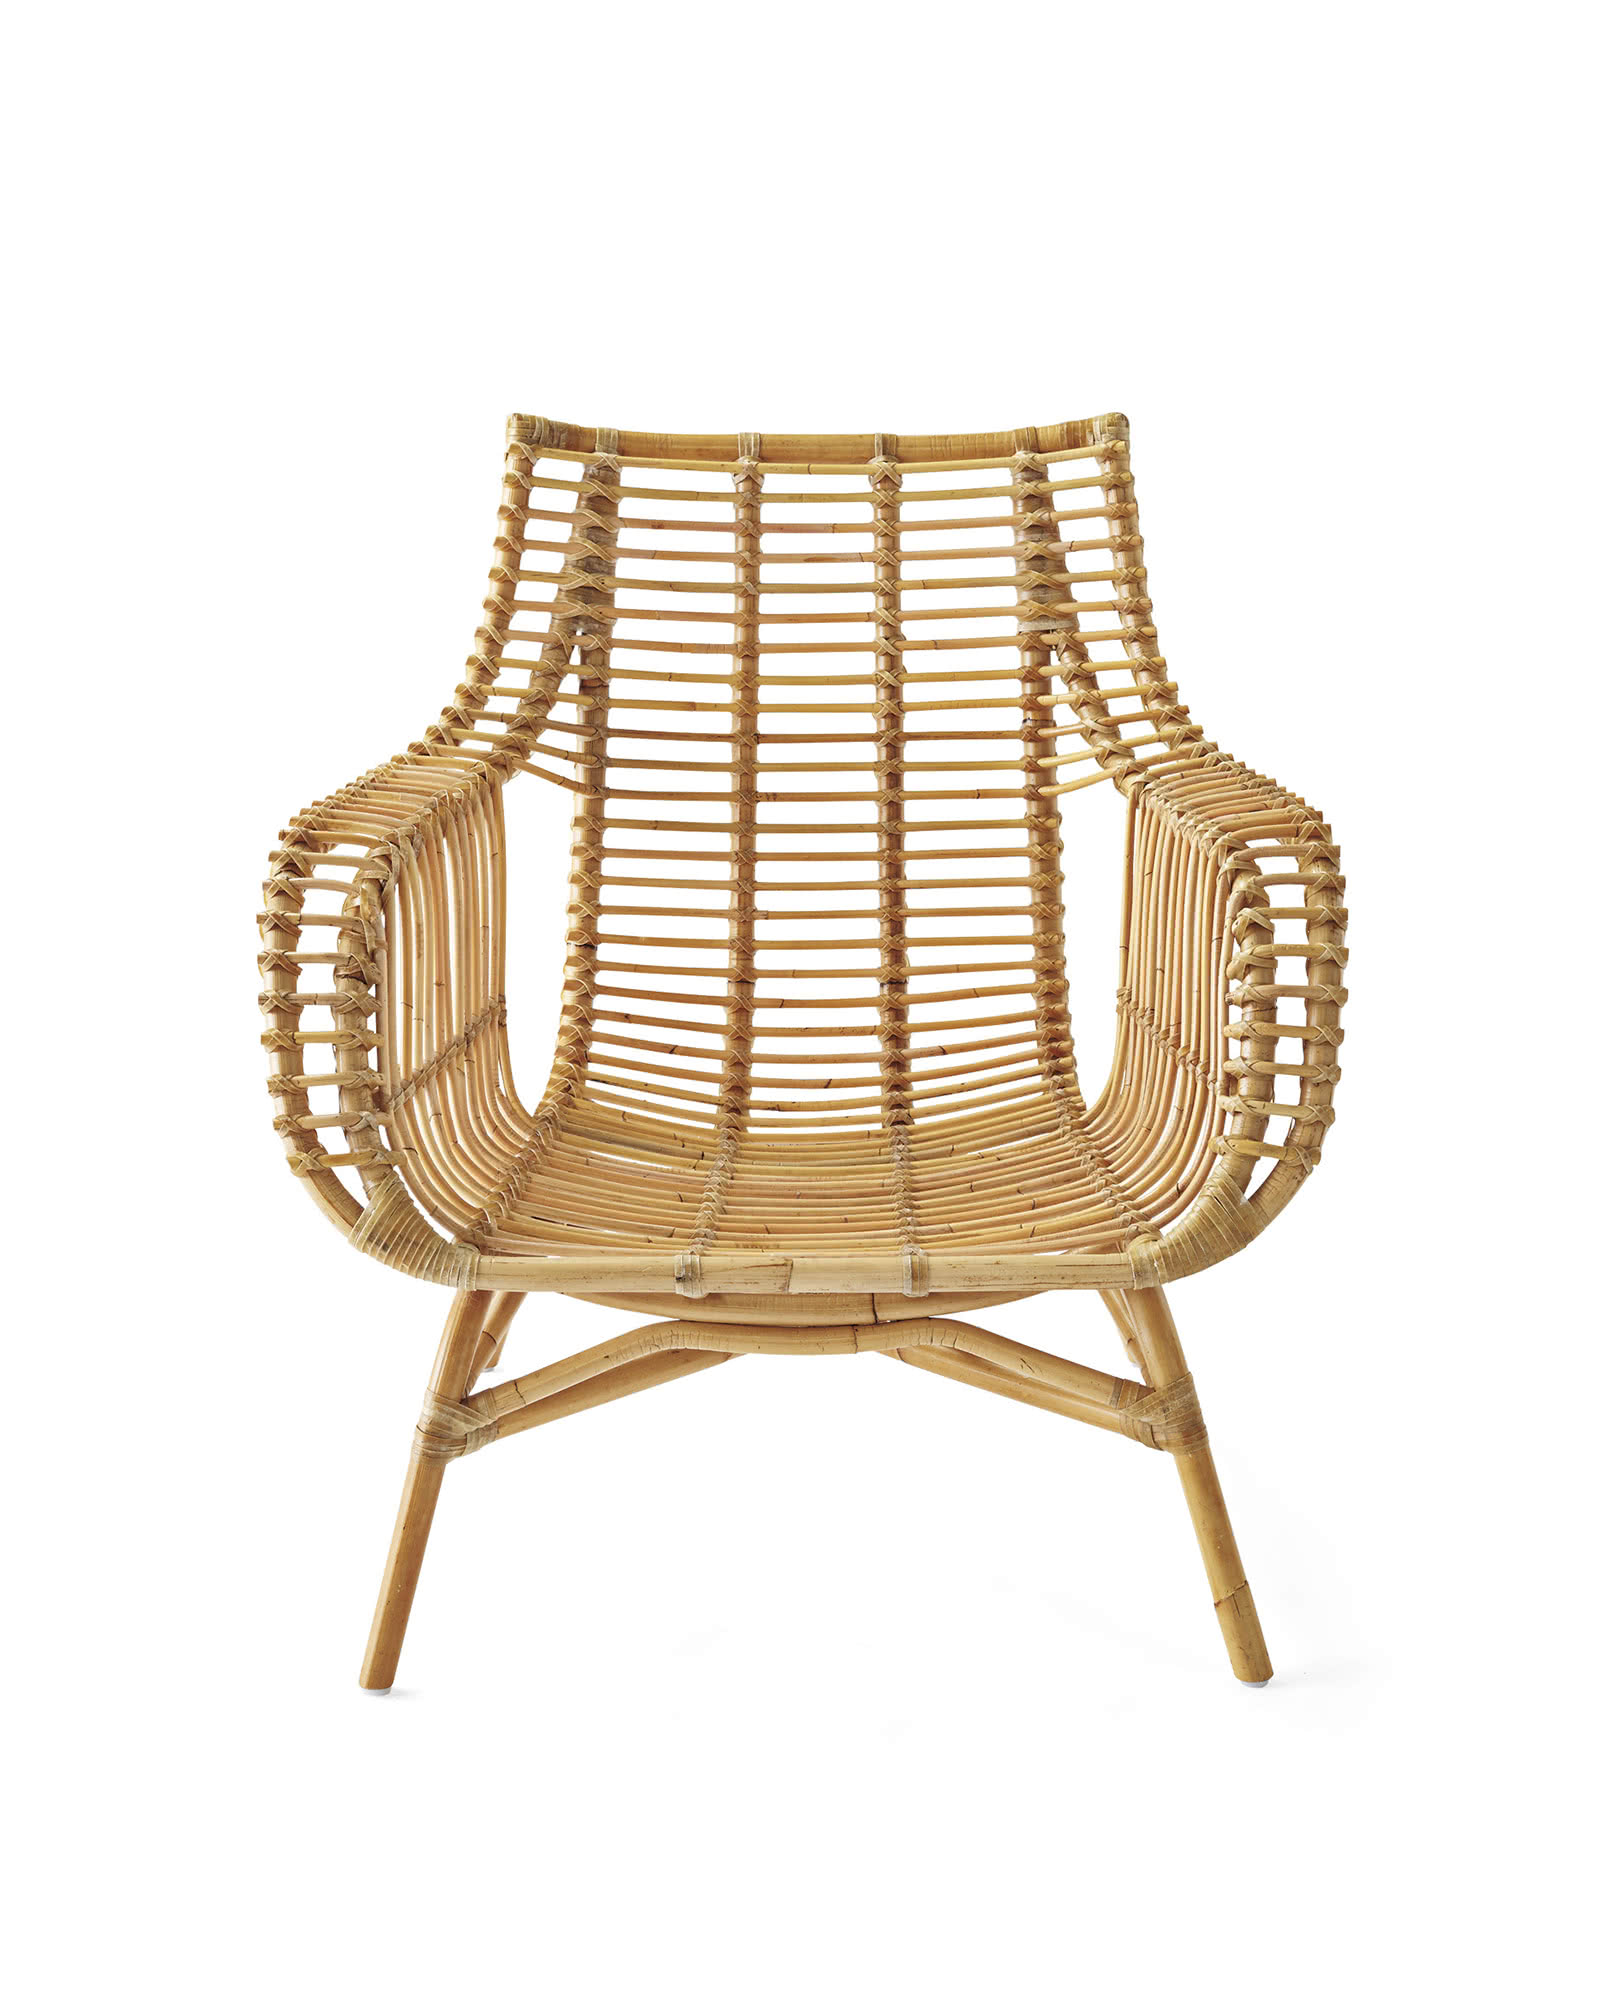 Furn_Chair_Venice_Rattan_Natural_MV_Crop_SH.jpg